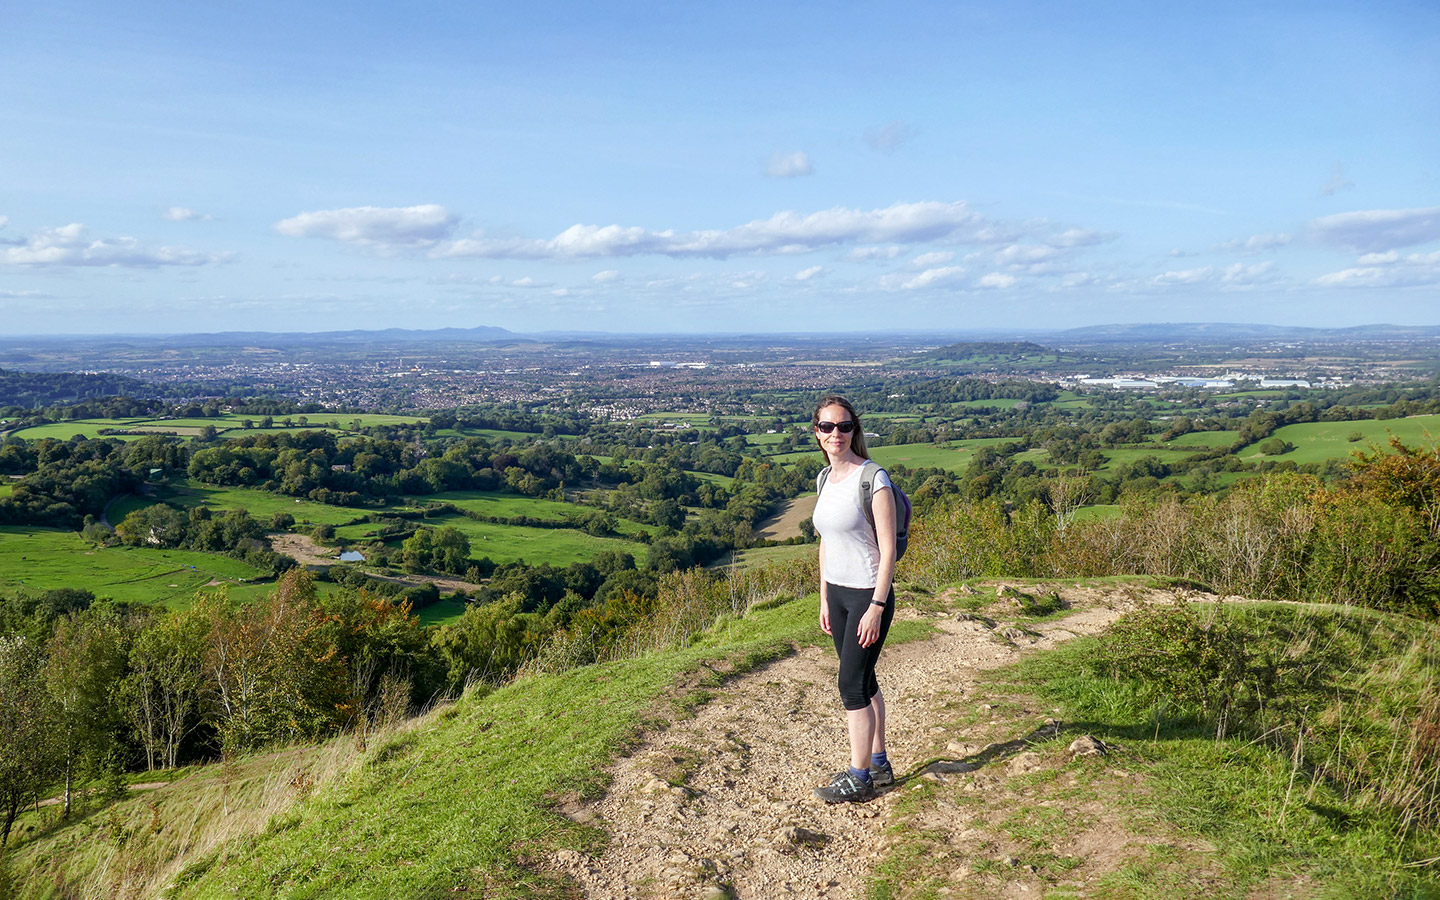 Views from Painswick Beacon on the Cotswold Way